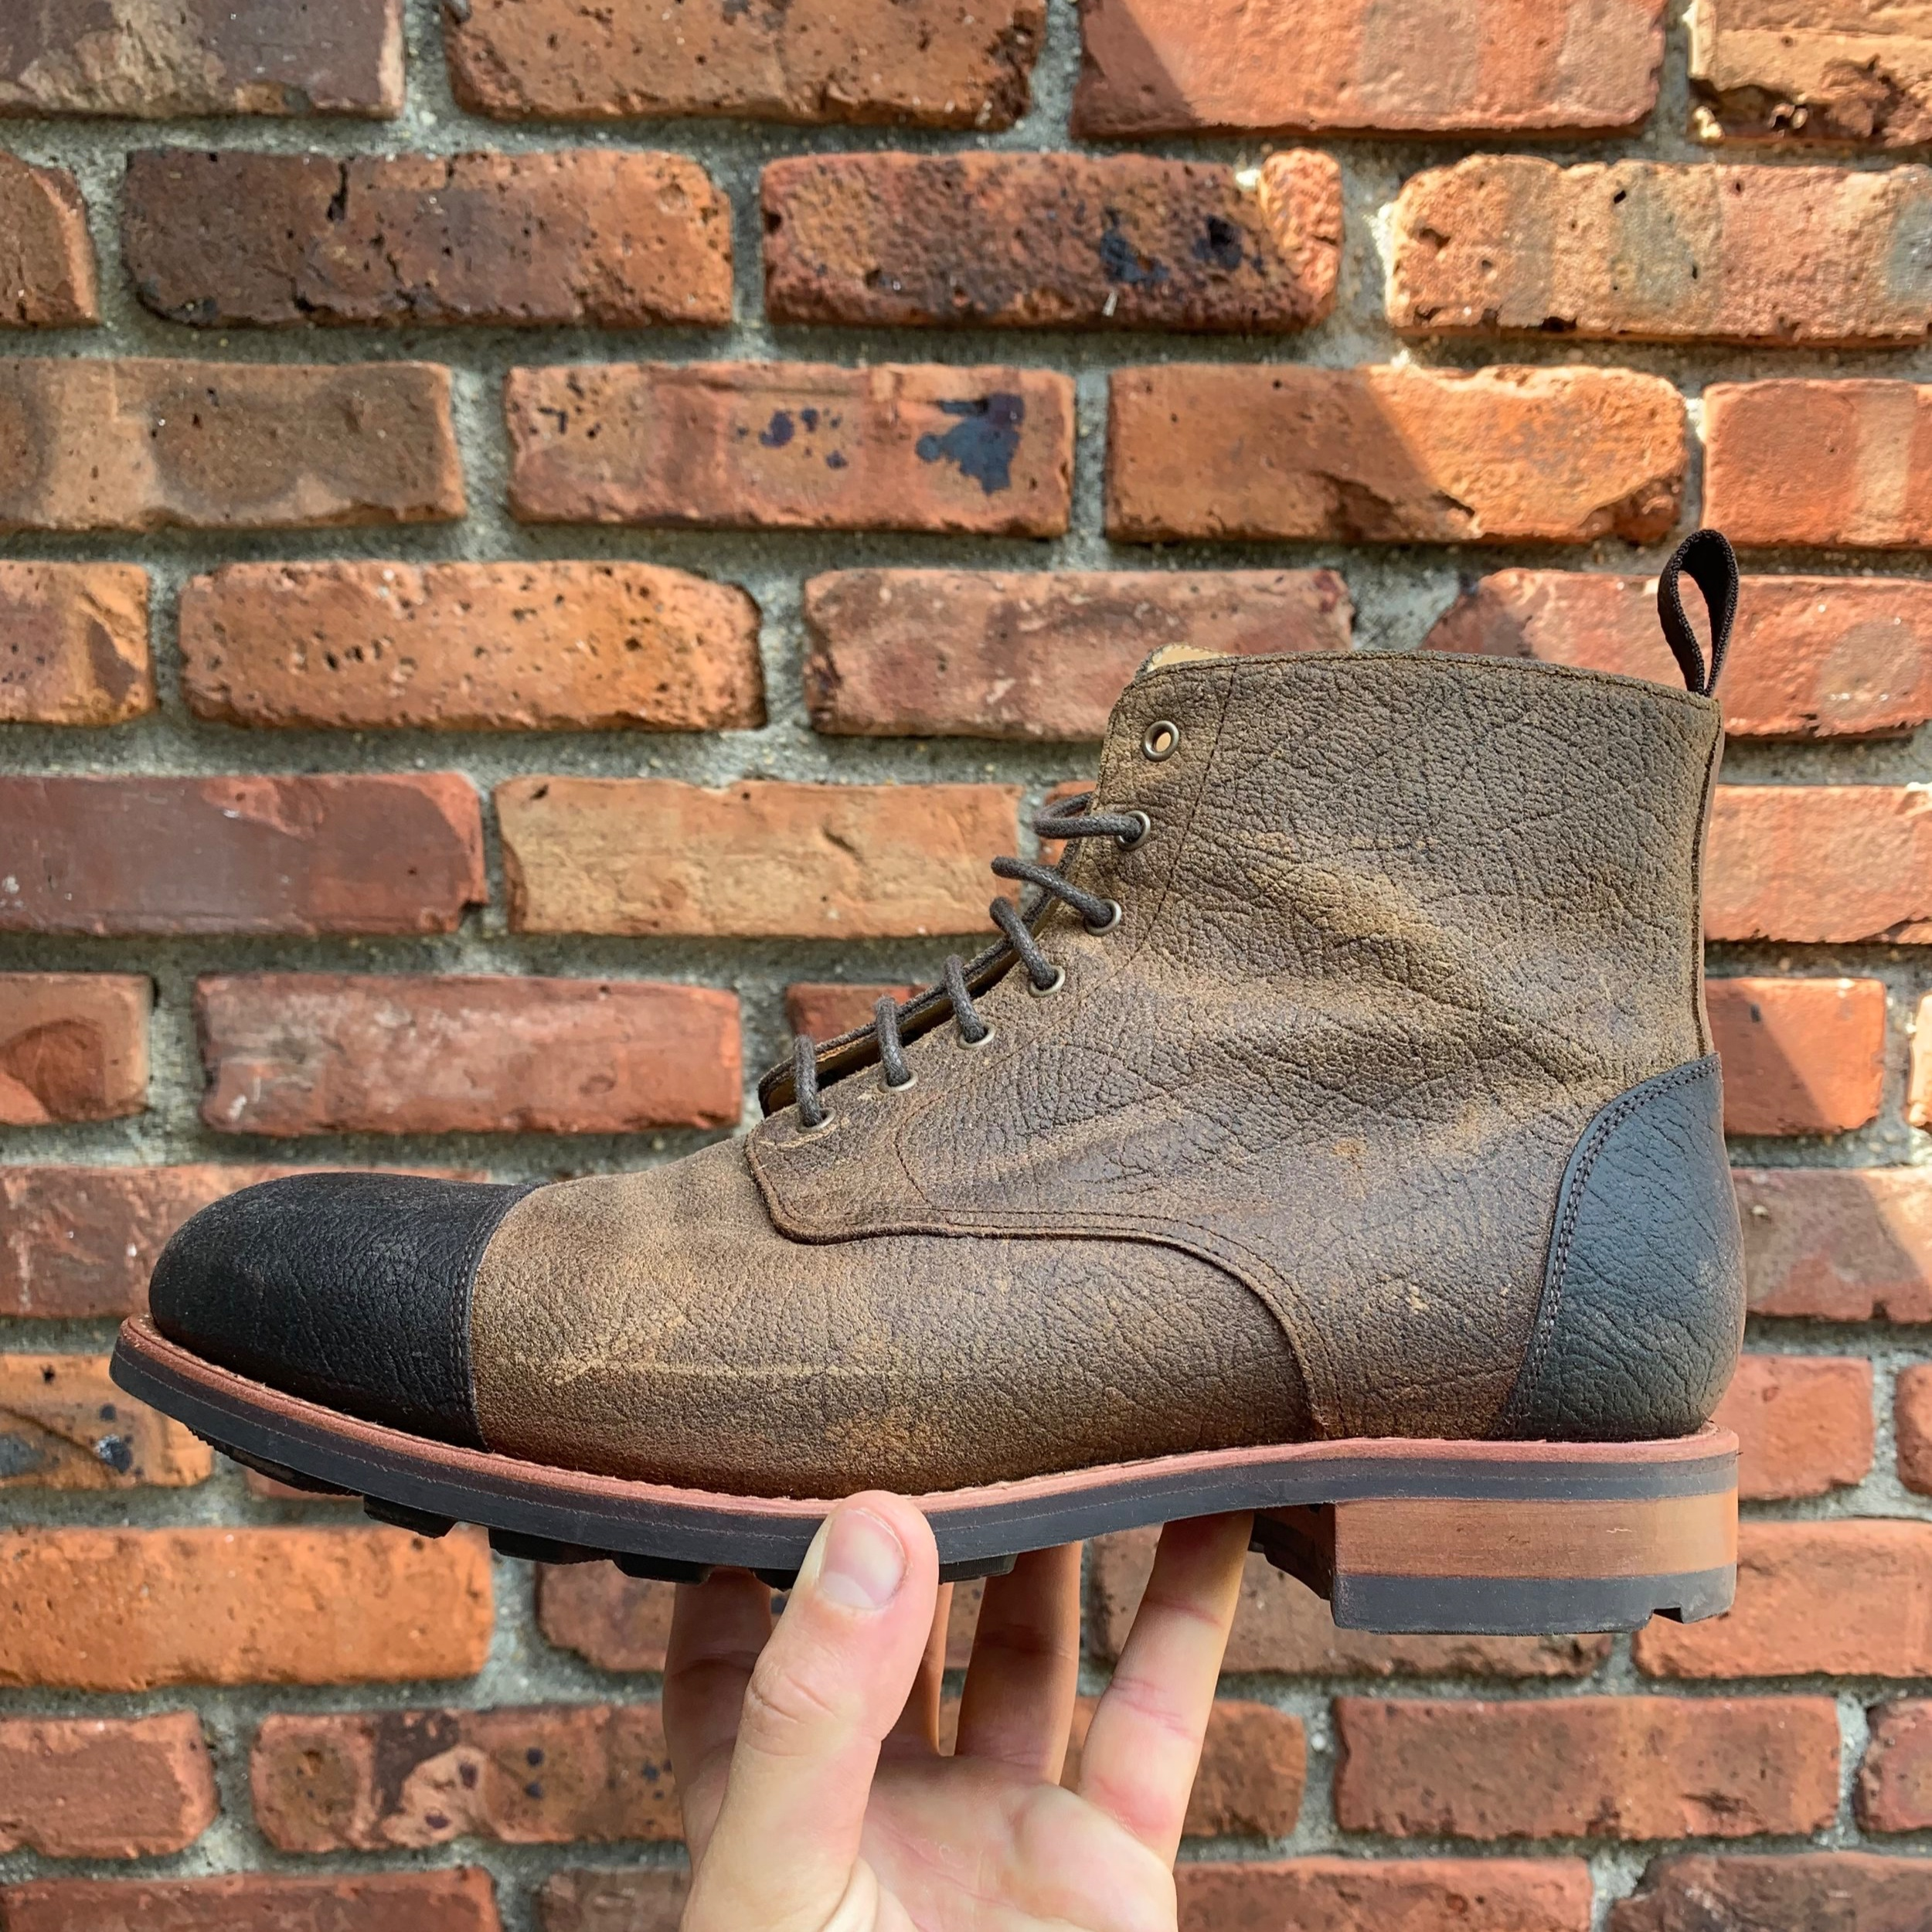 A 360 degree Goodyear welt makes these boots legit; waterproof, and totally recraftable